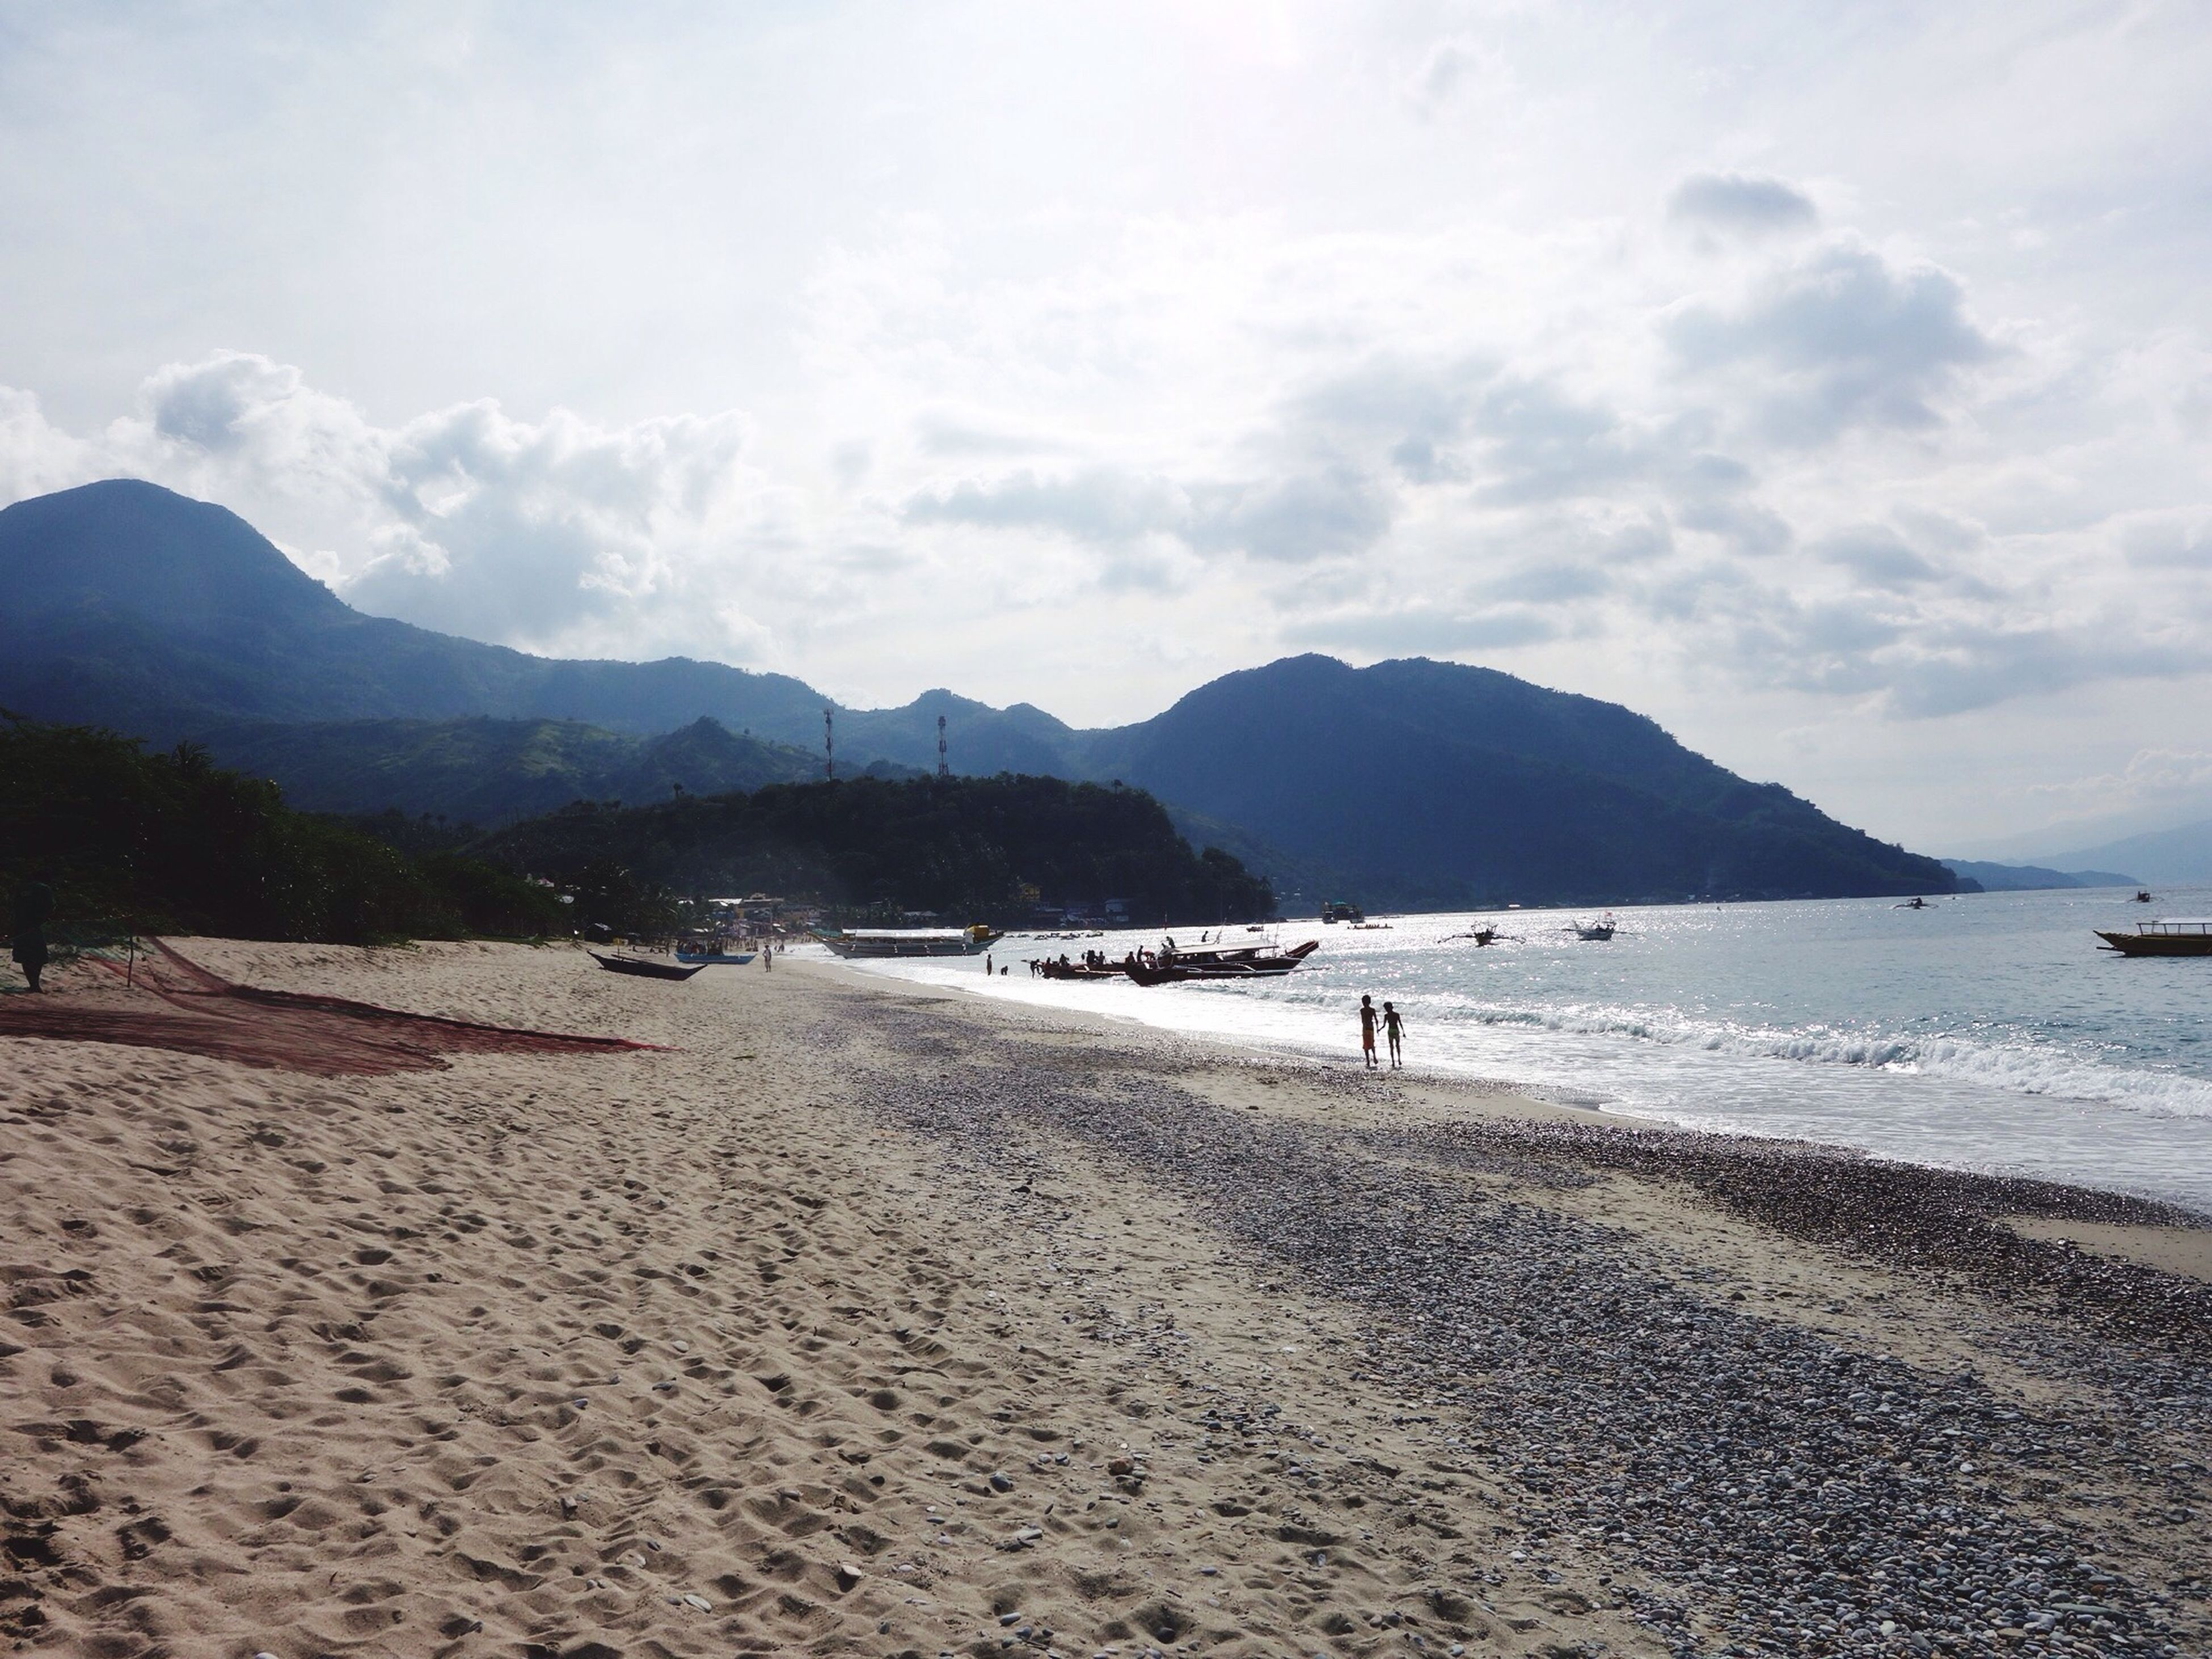 beach, sea, sky, water, mountain, sand, shore, scenics, tranquil scene, beauty in nature, tranquility, cloud - sky, nature, incidental people, coastline, cloud, vacations, mountain range, walking